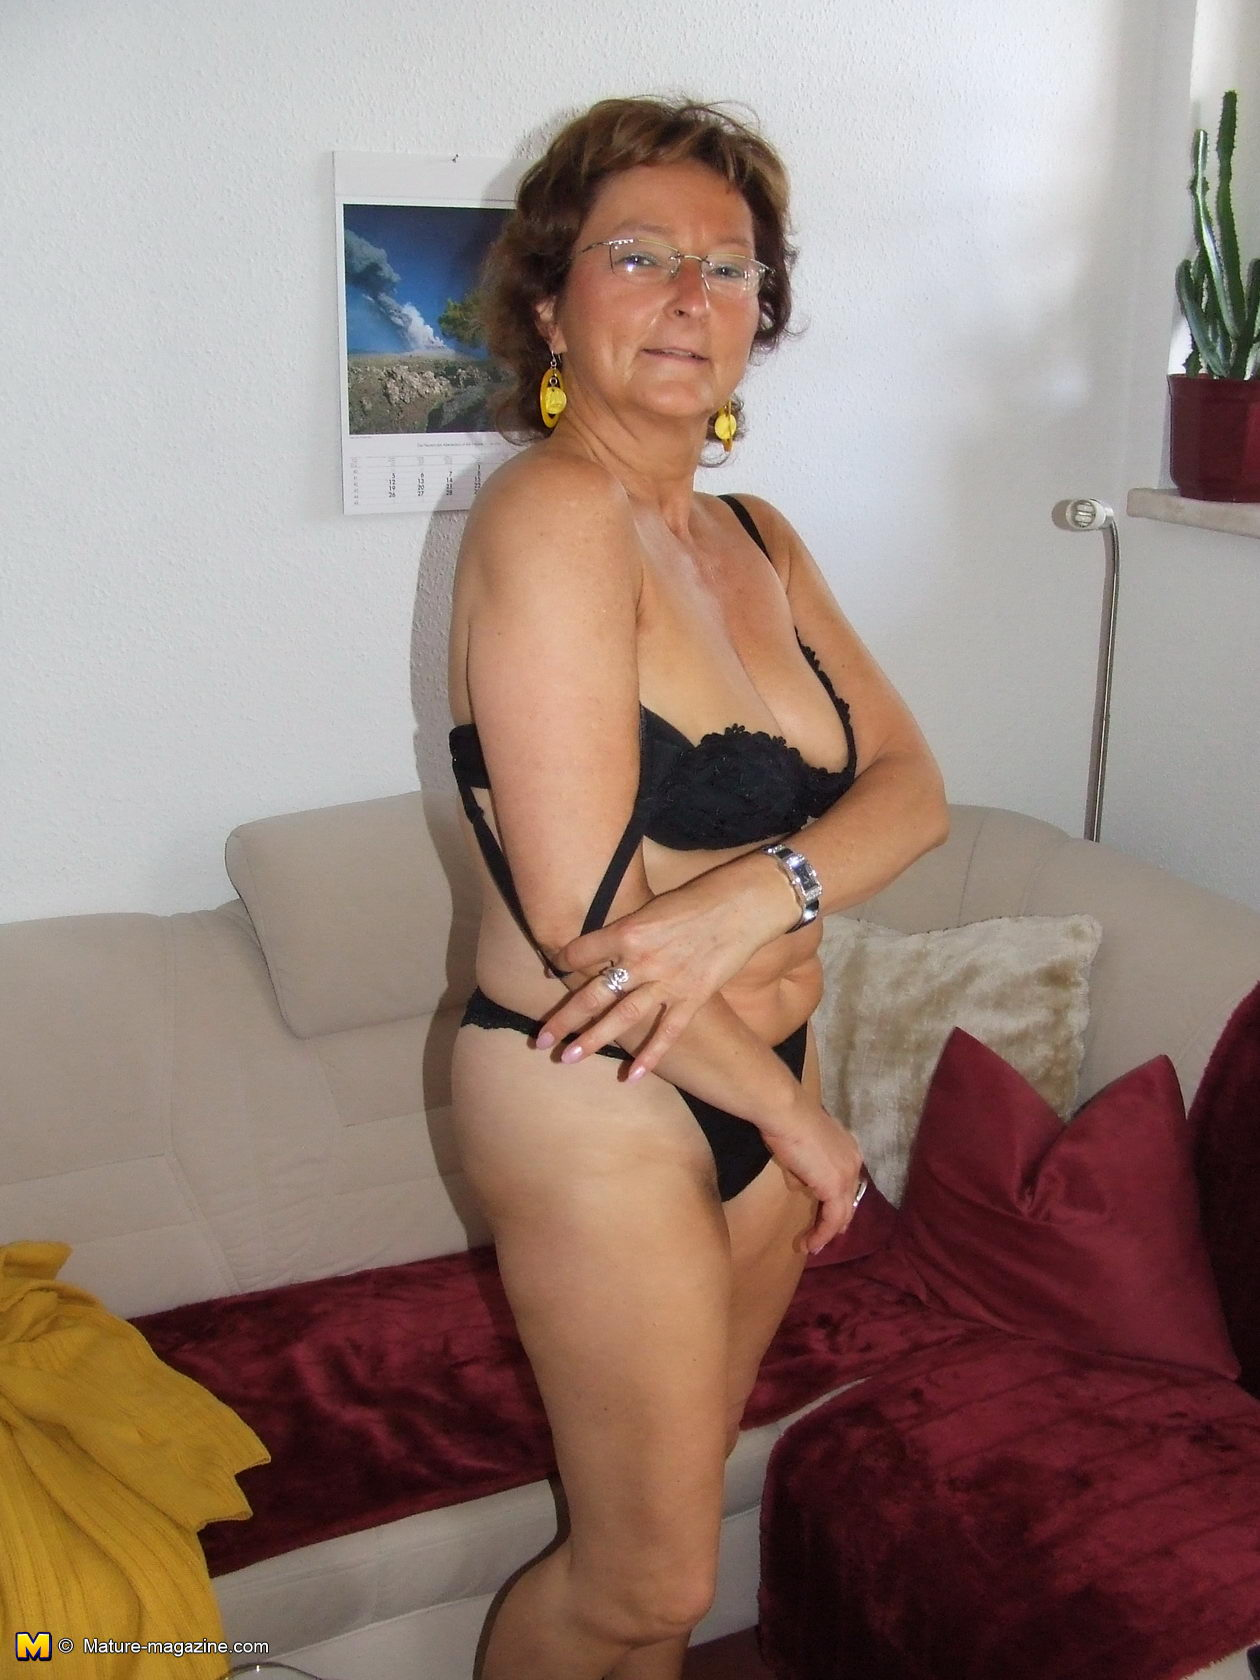 hairy amateur housewife getting naked - grannypornpics